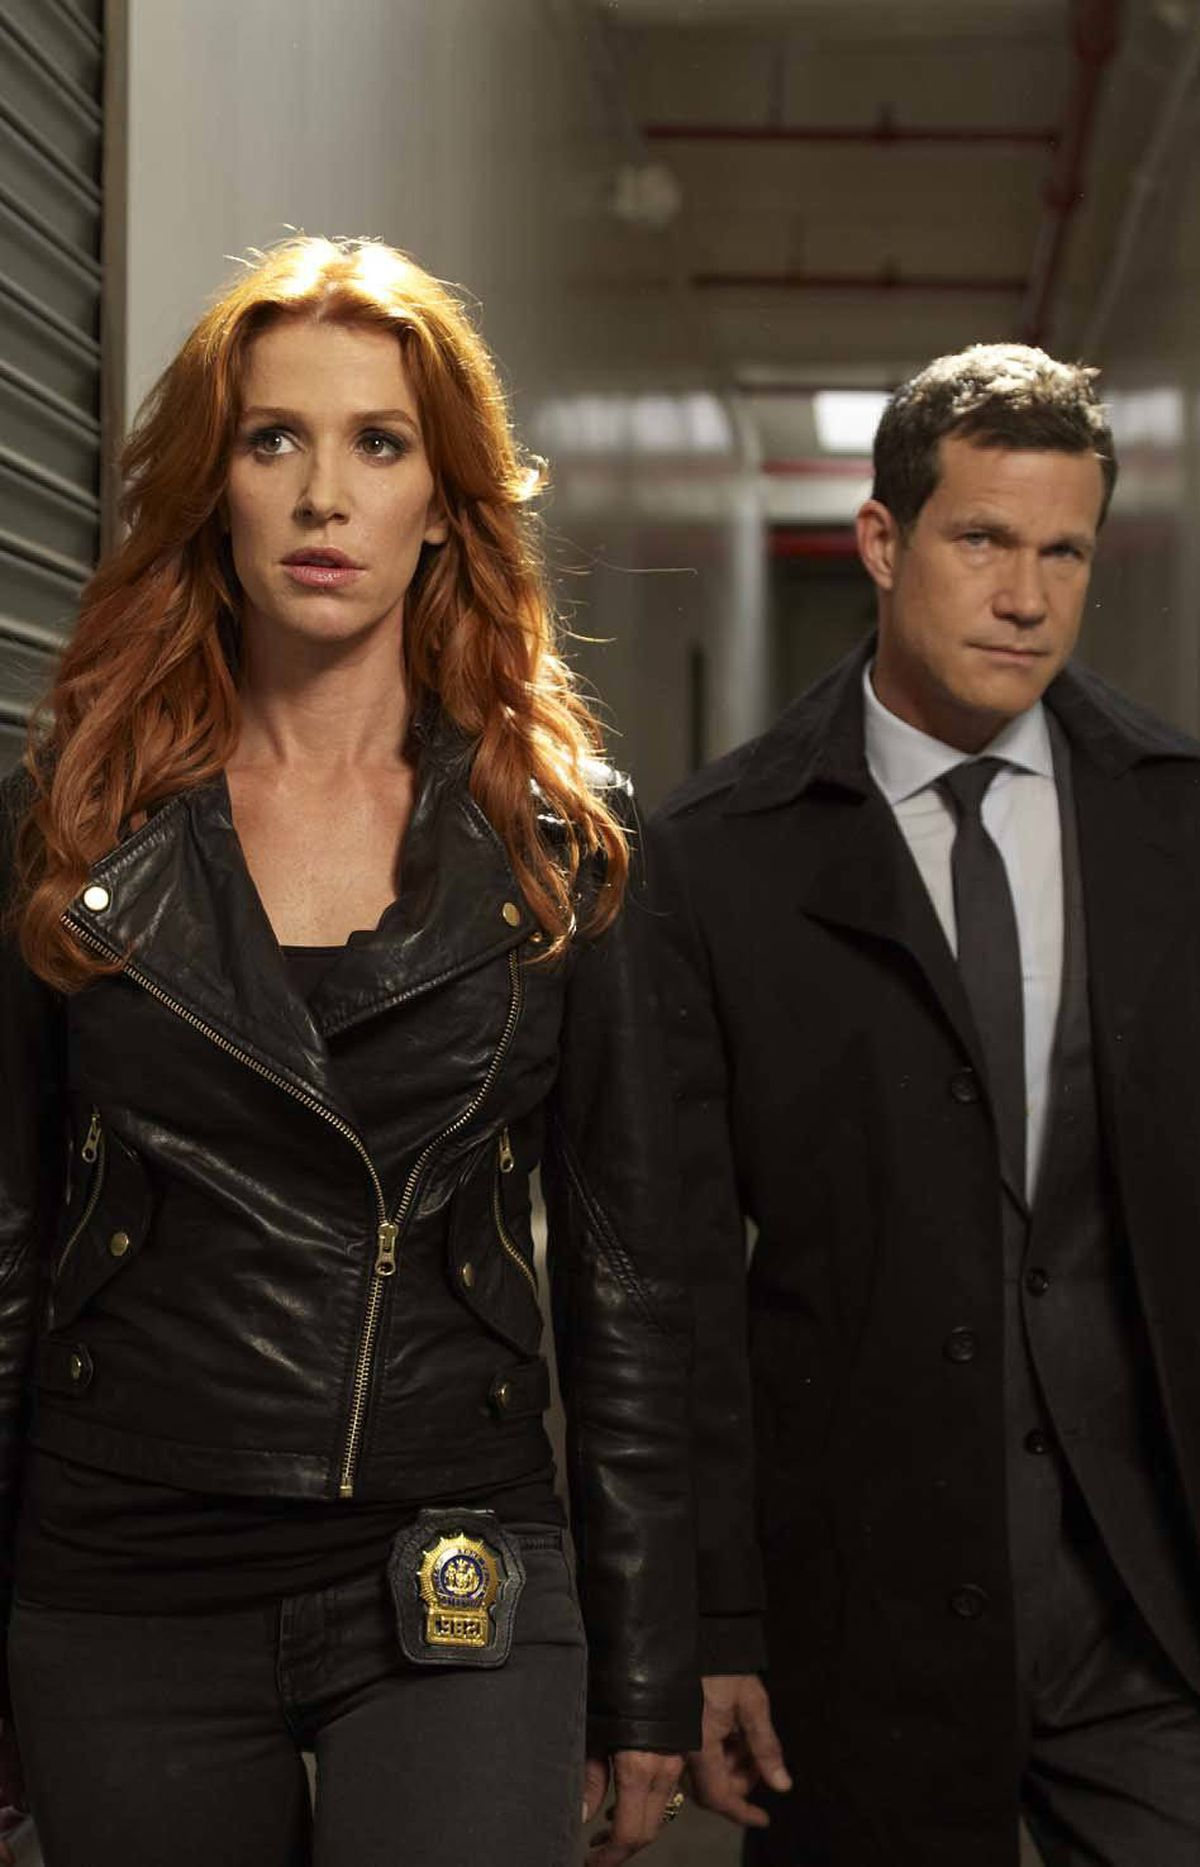 DRAMA Unforgettable CBS, CTV, 10 p.m. Still one of the few new fall shows to pull respectable ratings each week, this series casts former Without a Trace regular Poppy Montgomery as New York police detective Carrie Wells, who is afflicted with the extremely rare condition known as hyperthymesia. The condition allows Carrie to remember details of every single thing she sees or hears. The bad news is that she can never forget! Tonight, Carrie and her ex-cop beau Al (Dylan Baker) look into the murder of a renowned TV poltergeist investigator. Was his final ghost hunt his undoing?